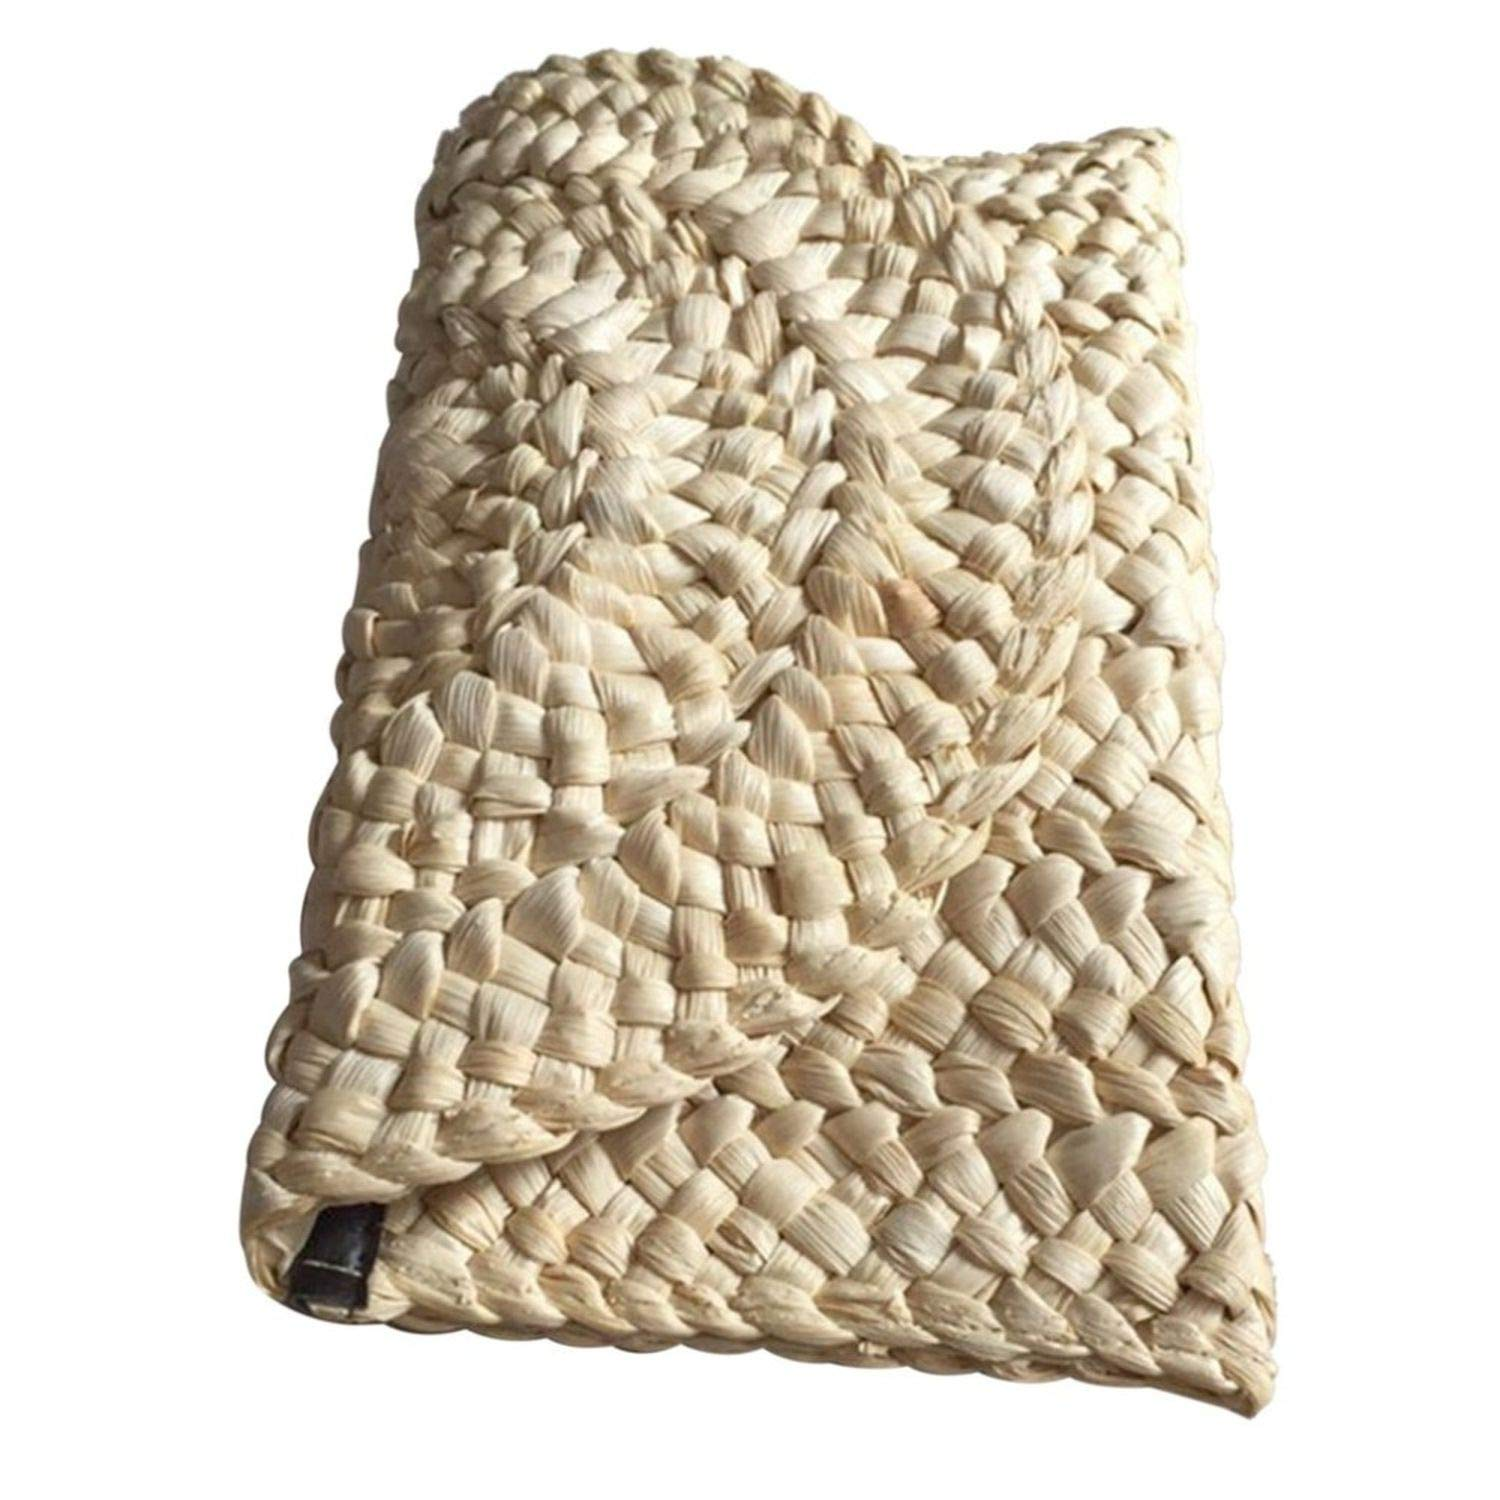 Straw Clutch Braided Wicker...